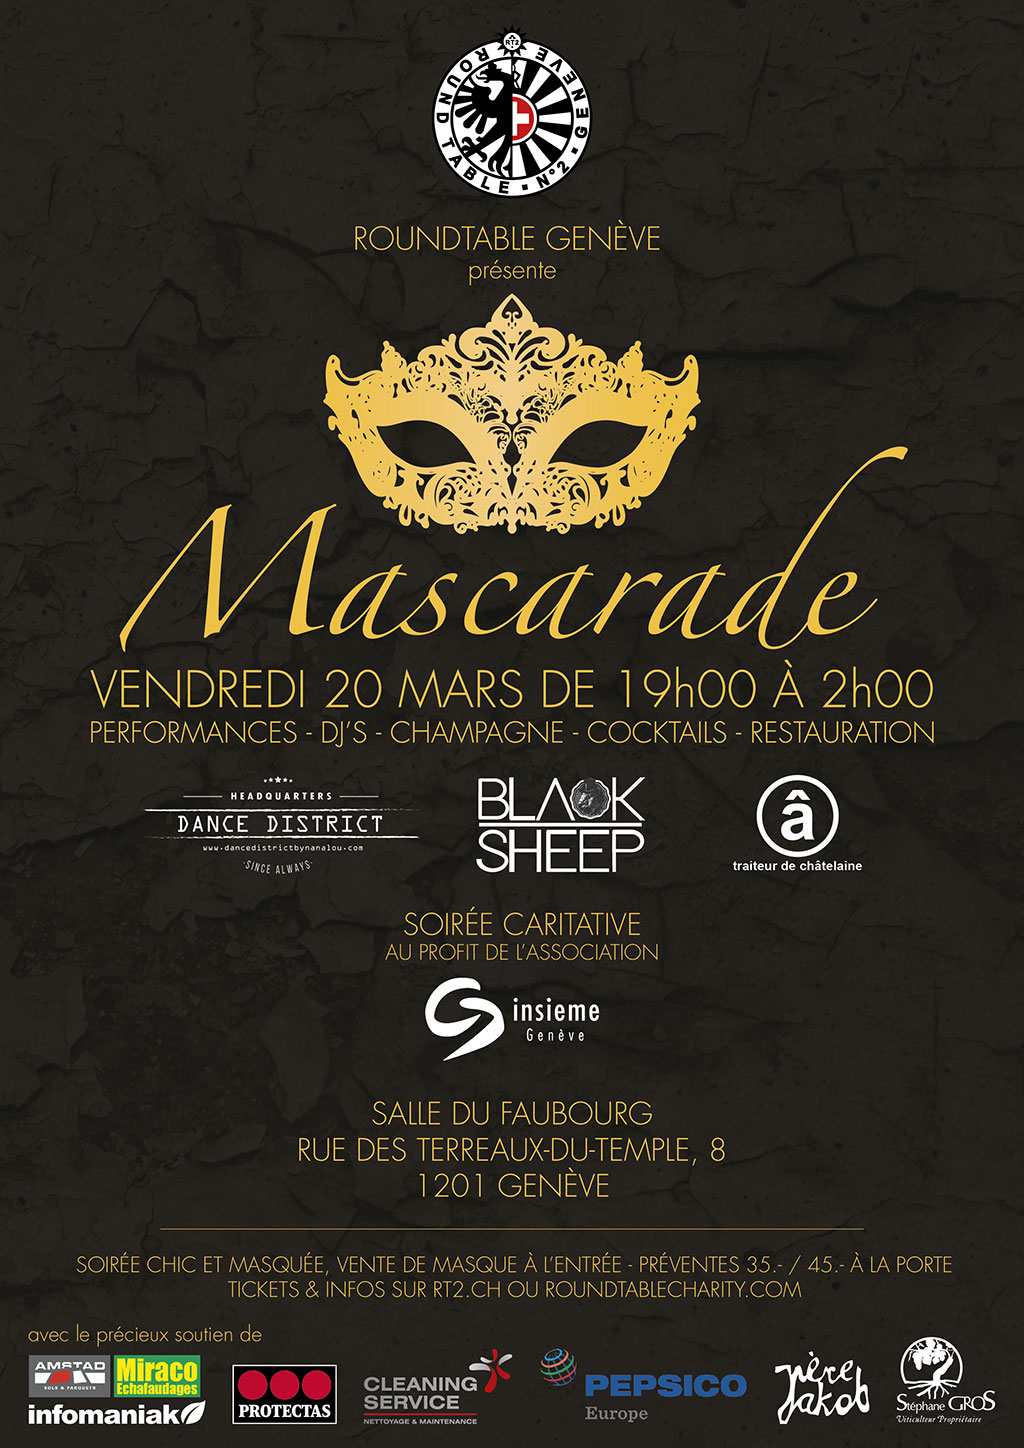 Round Table Charity Party 2020 - Mascarade